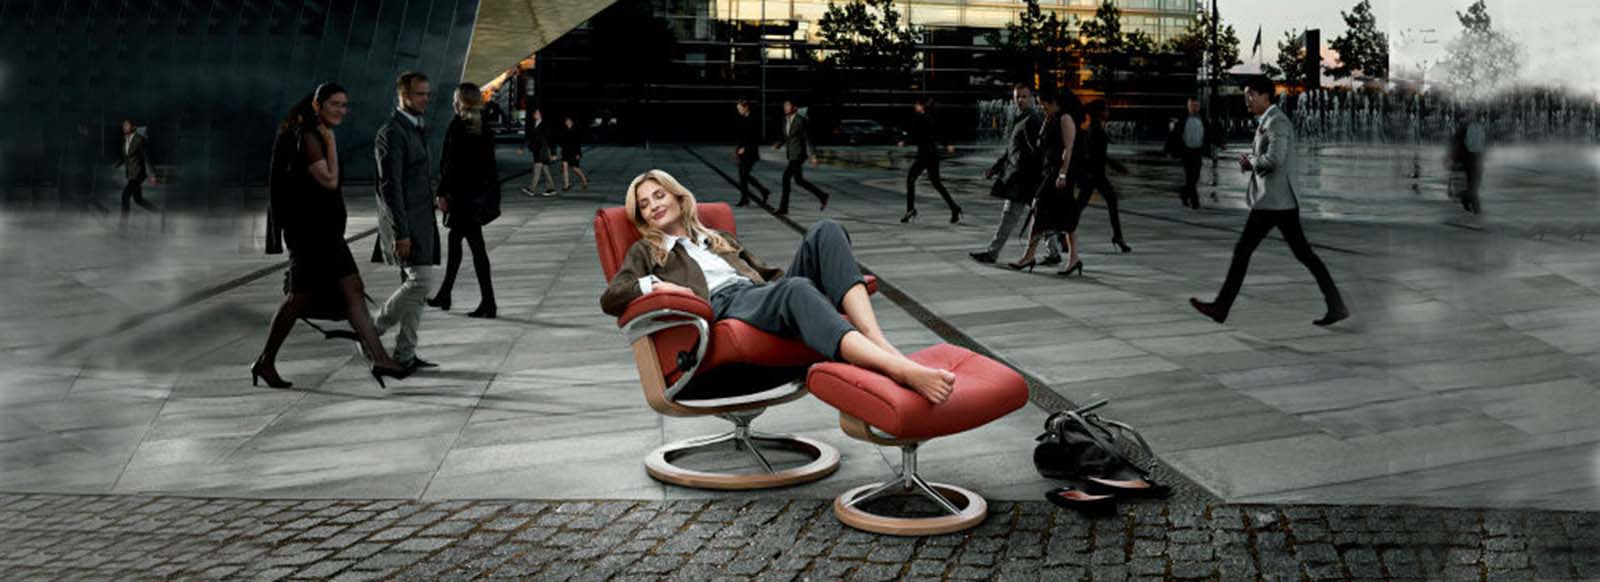 stressless nordic recliner in front of a modern building